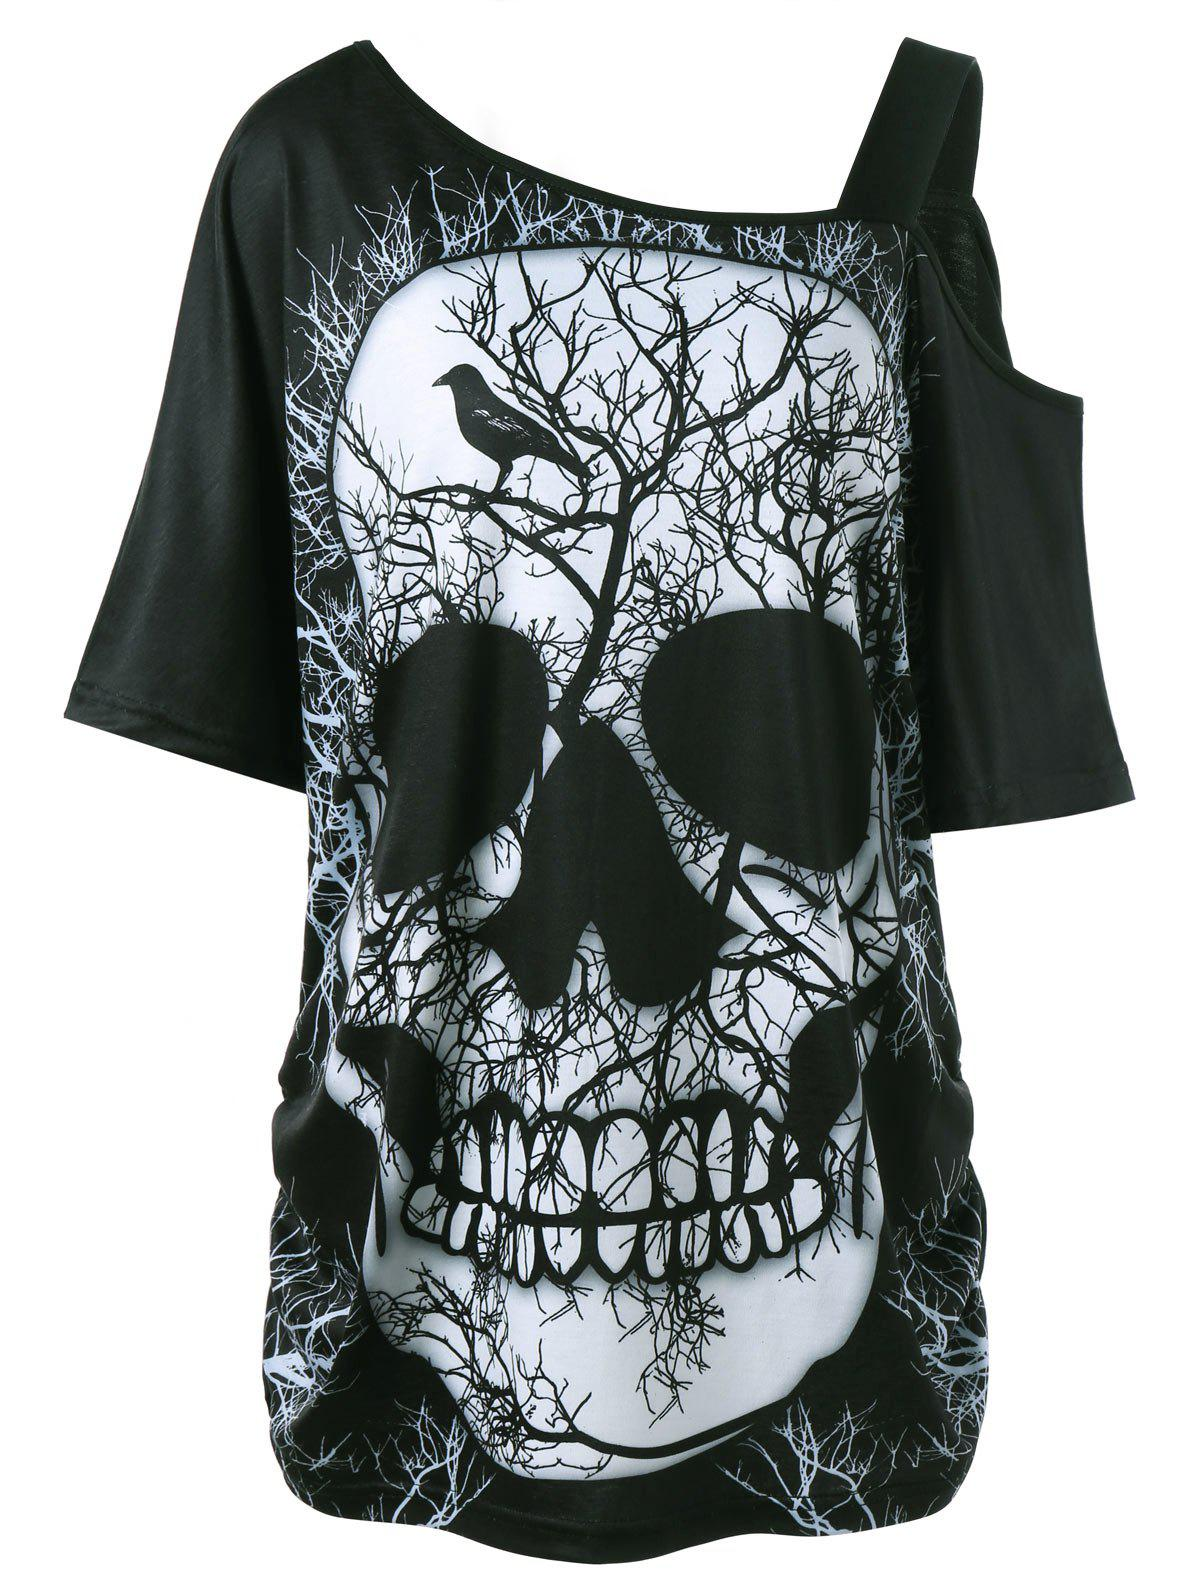 Plus Size Skull Skew Collar Long T-shirtWOMEN<br><br>Size: 5XL; Color: BLACK; Material: Polyester,Spandex; Shirt Length: Long; Sleeve Length: Short; Collar: Skew Collar; Style: Casual; Season: Summer; Pattern Type: Skulls; Weight: 0.3000kg; Package Contents: 1 x T-shirt;